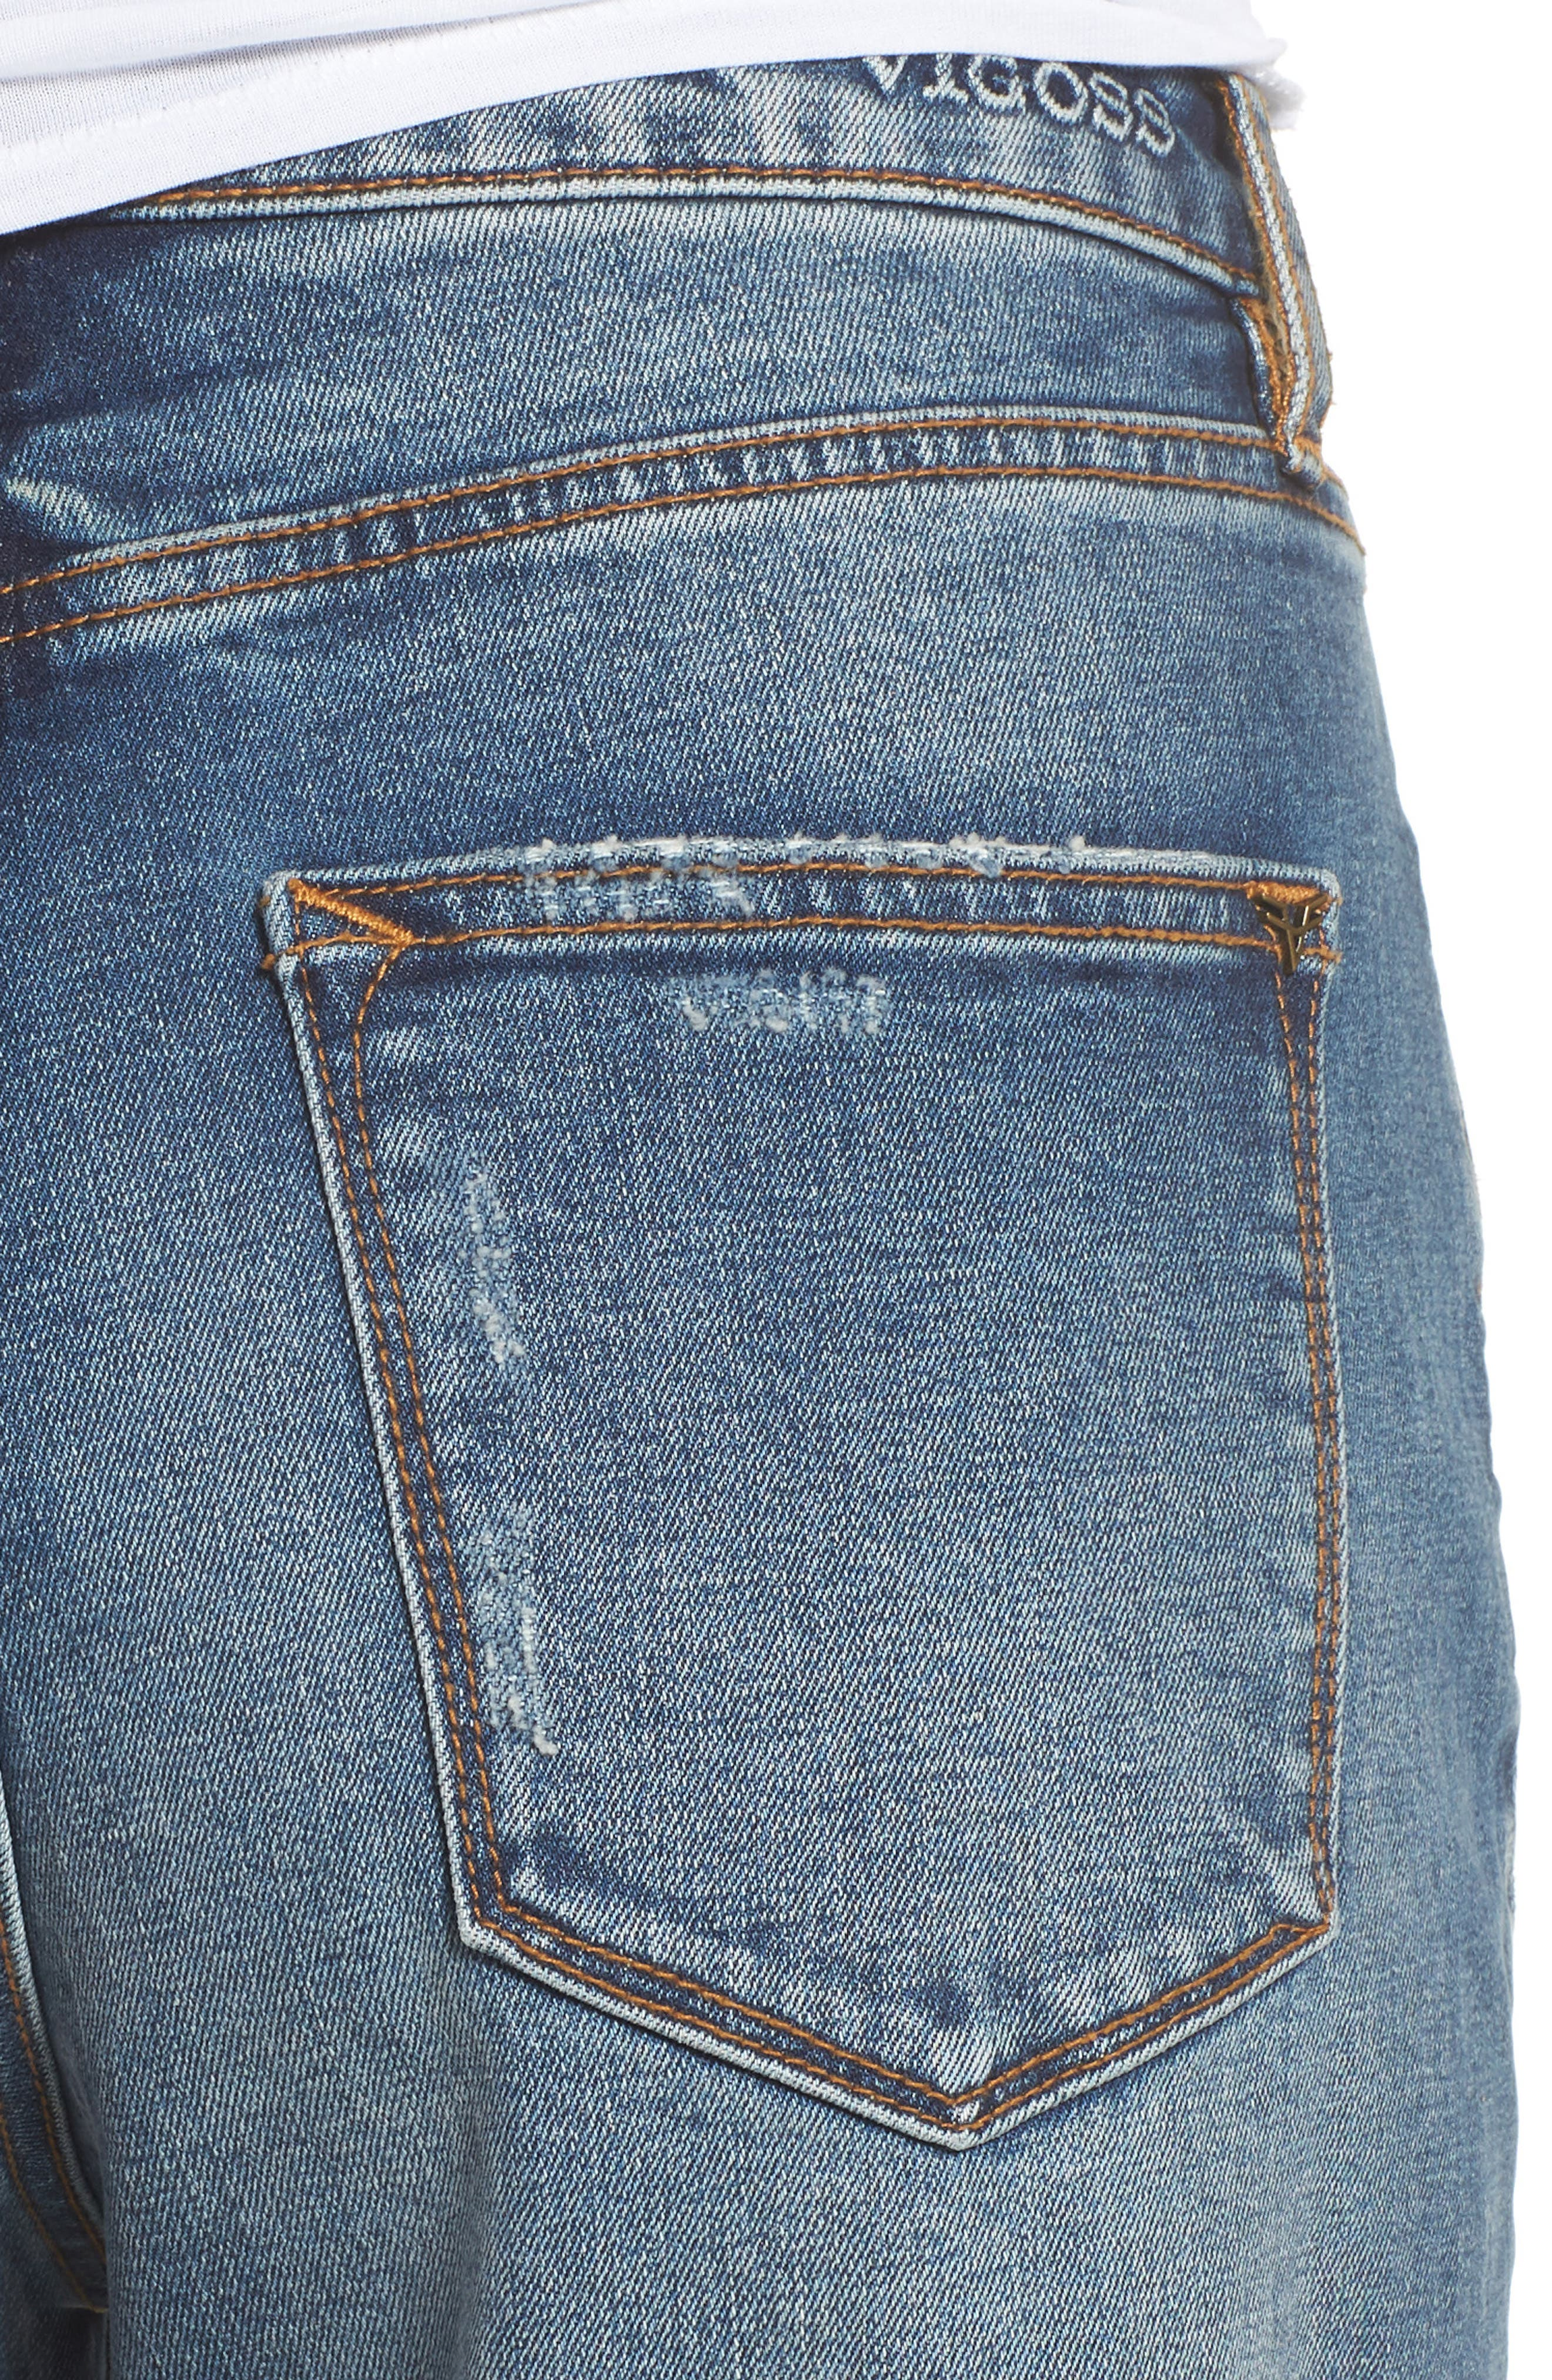 Friday Distressed Tapered Boyfriend Jeans,                             Alternate thumbnail 4, color,                             Medium Wash